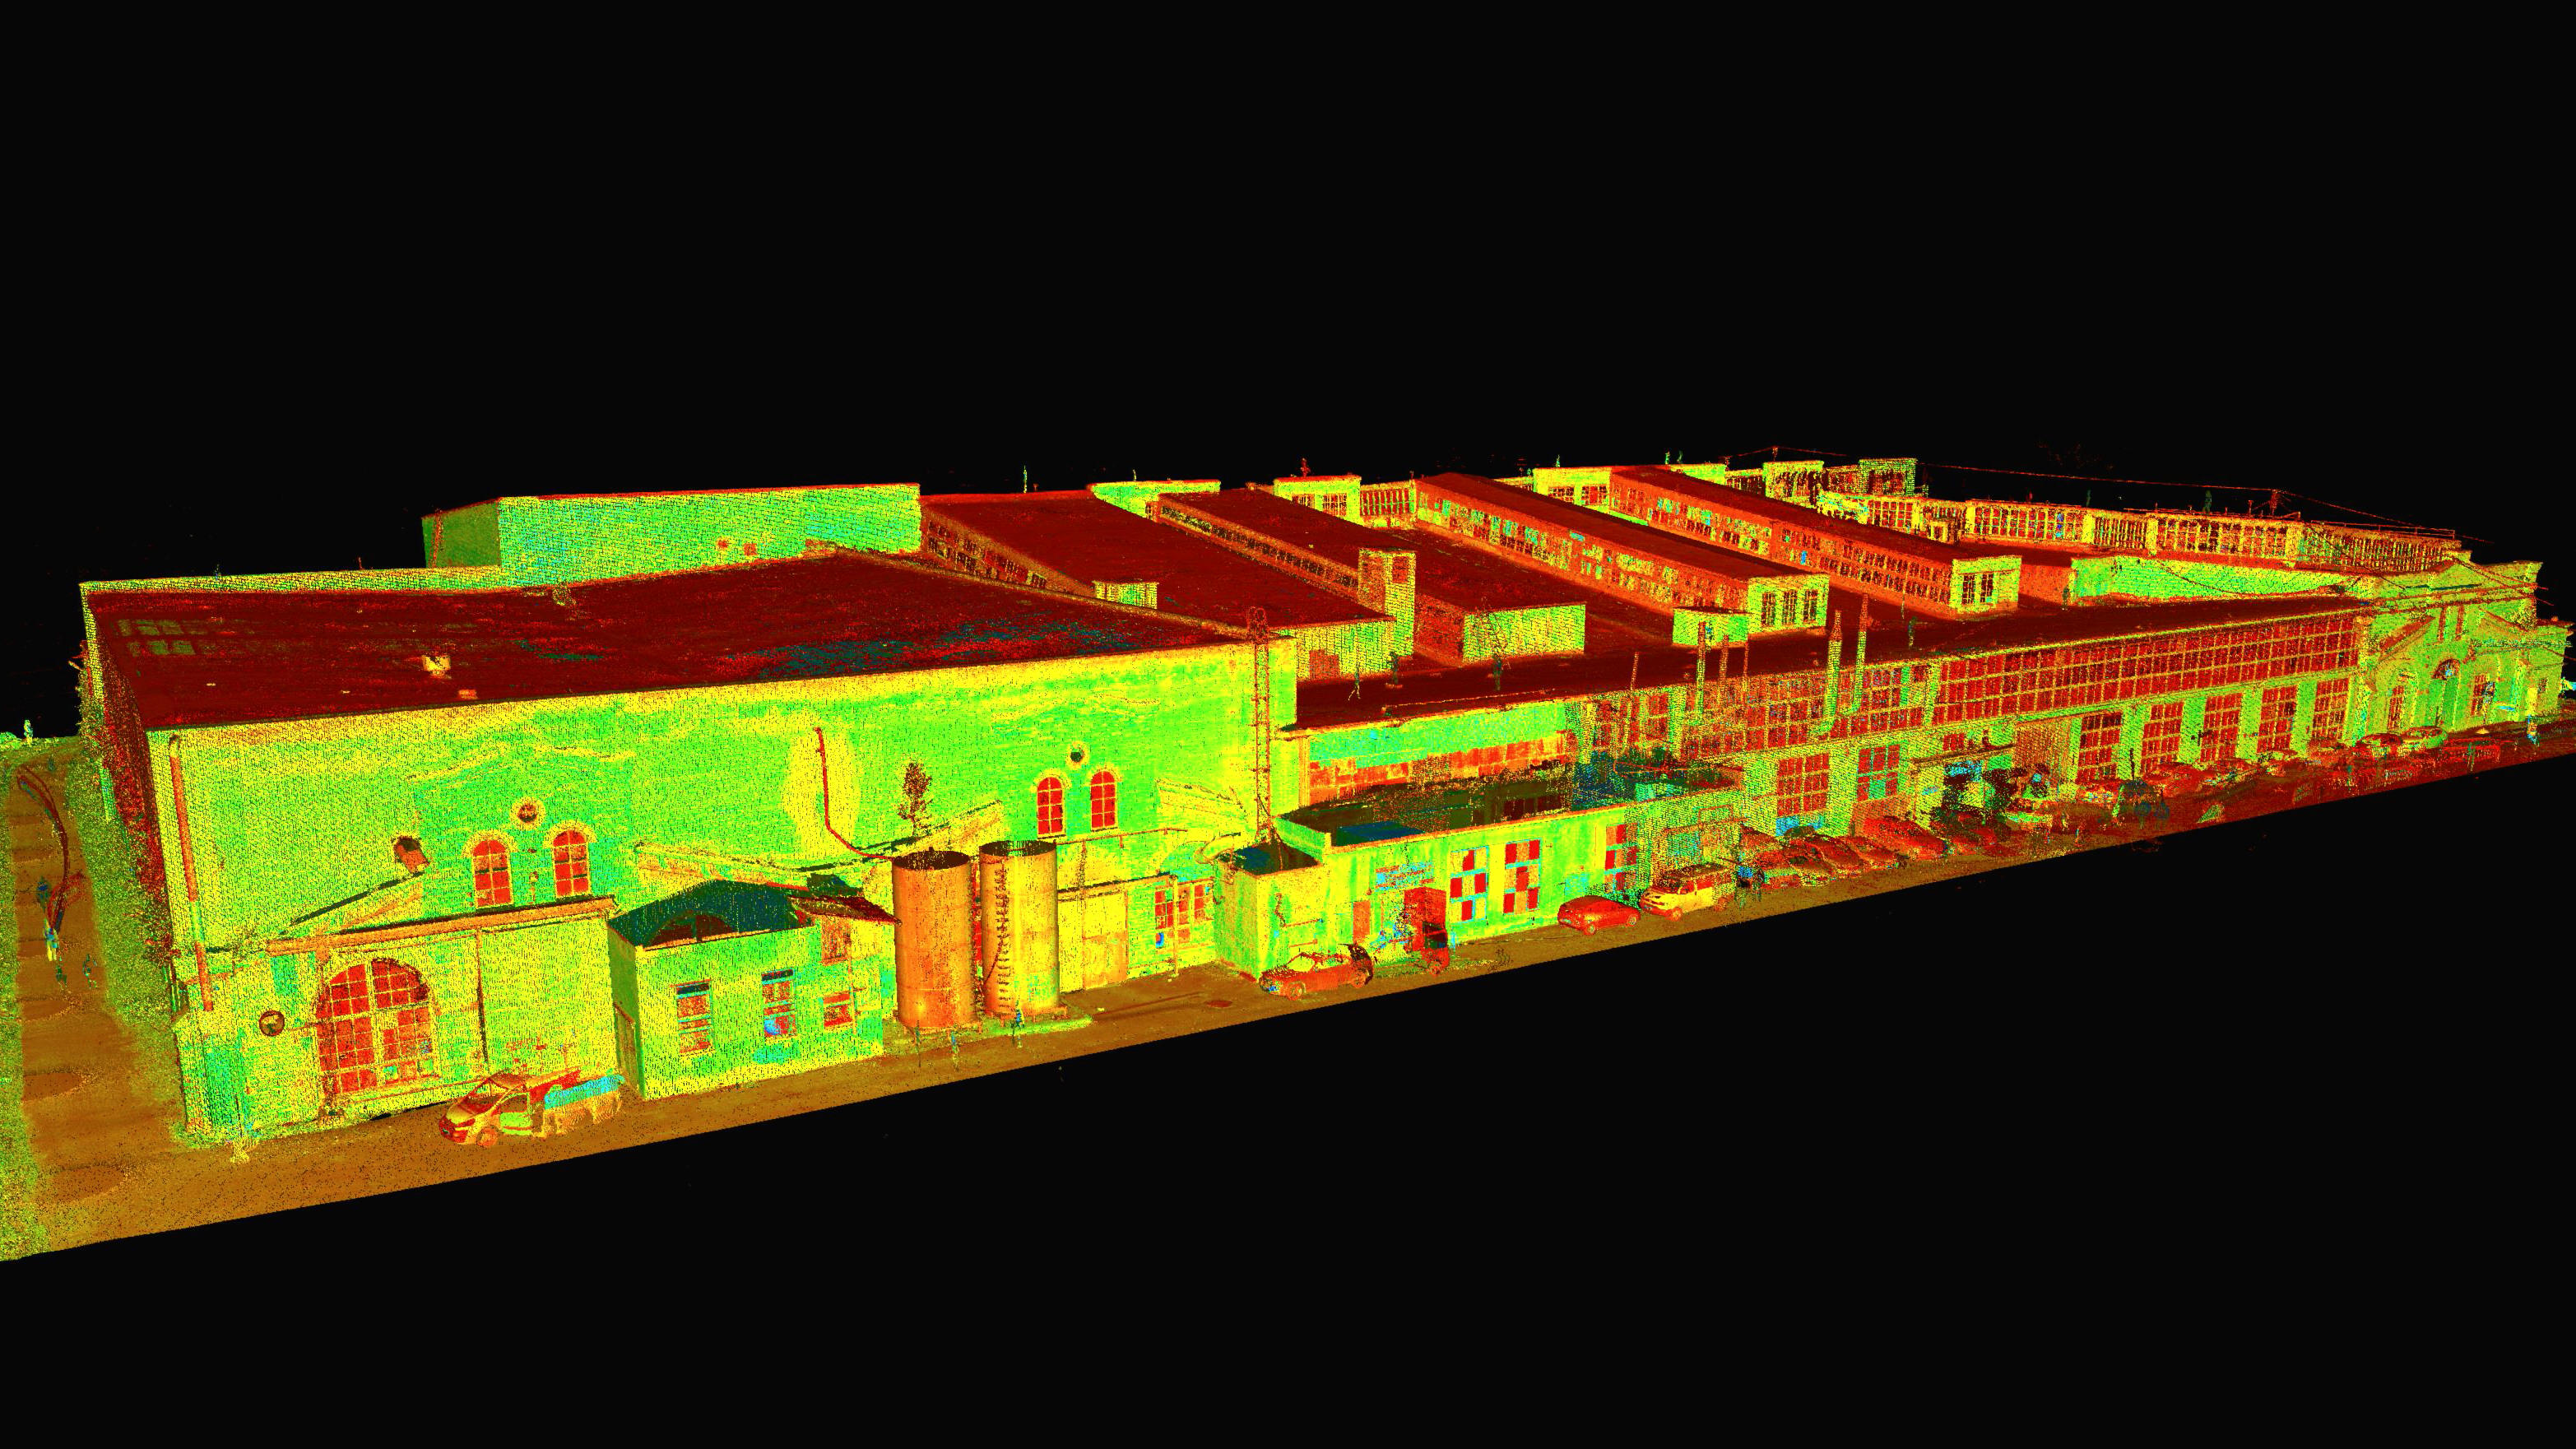 Laser scanning of the M-building in Telliskivi district, Tallinn